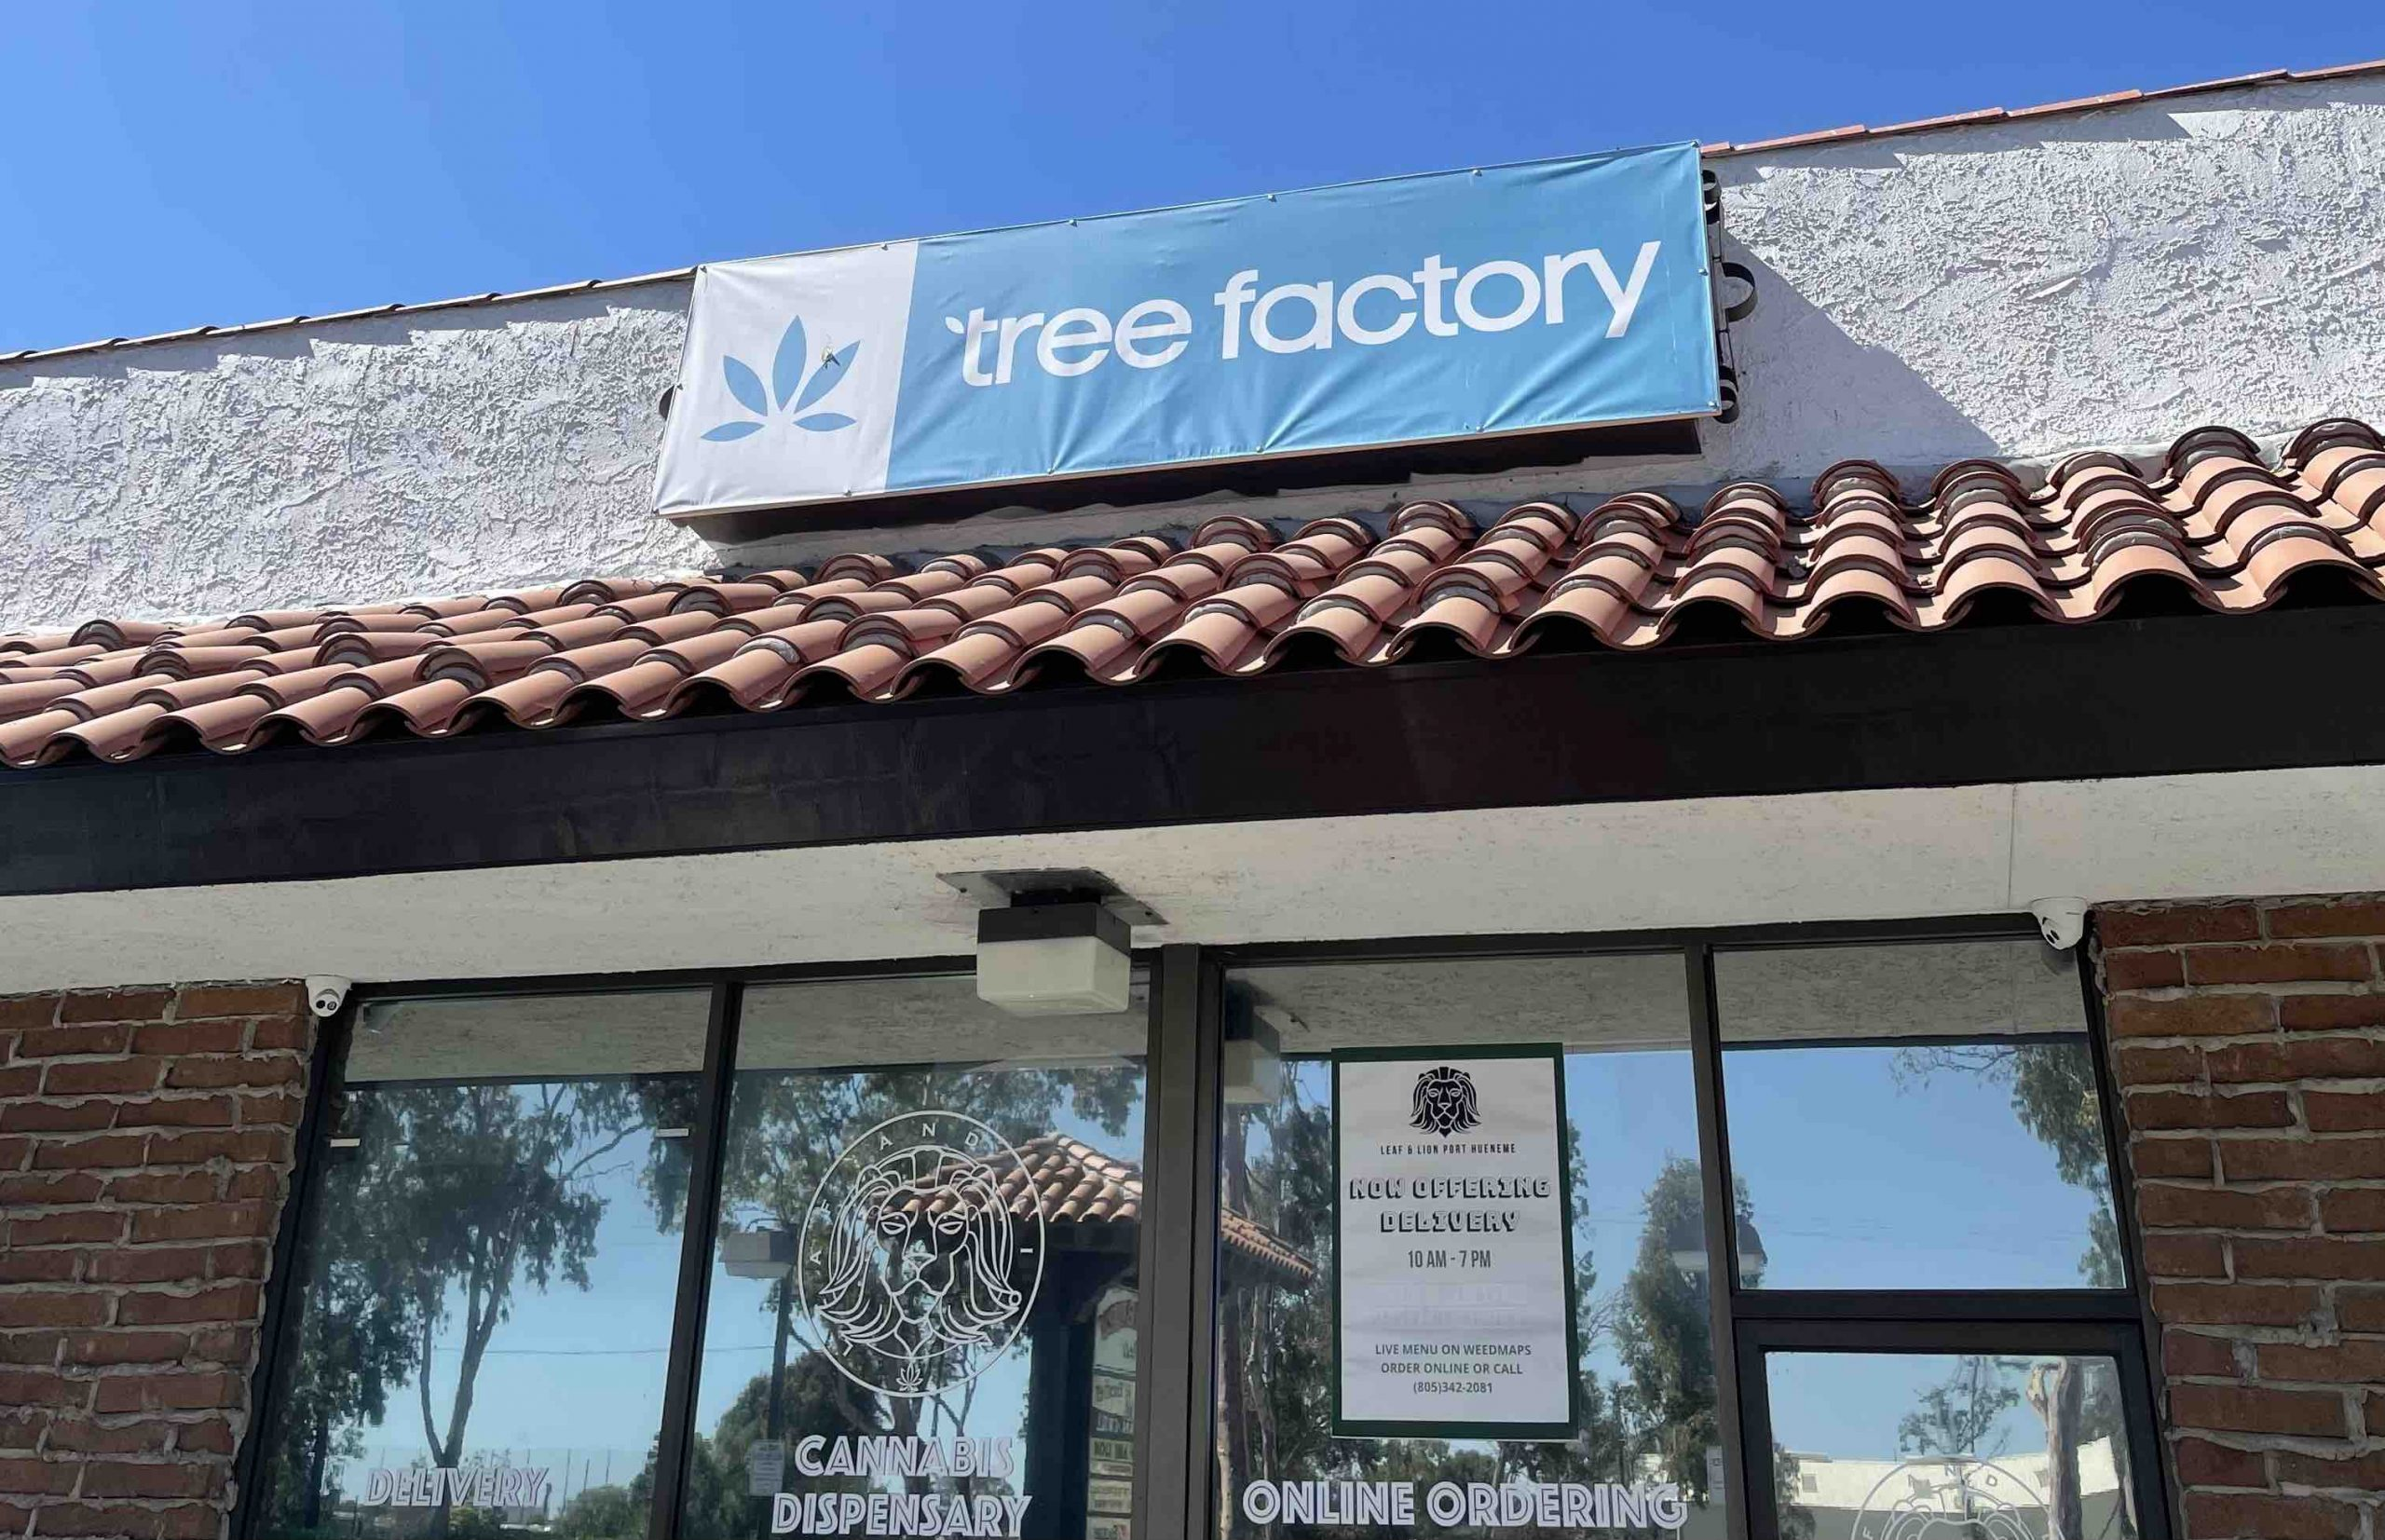 Tree Factory's Flagship Dispensary In Port Hueneme Is Now Open